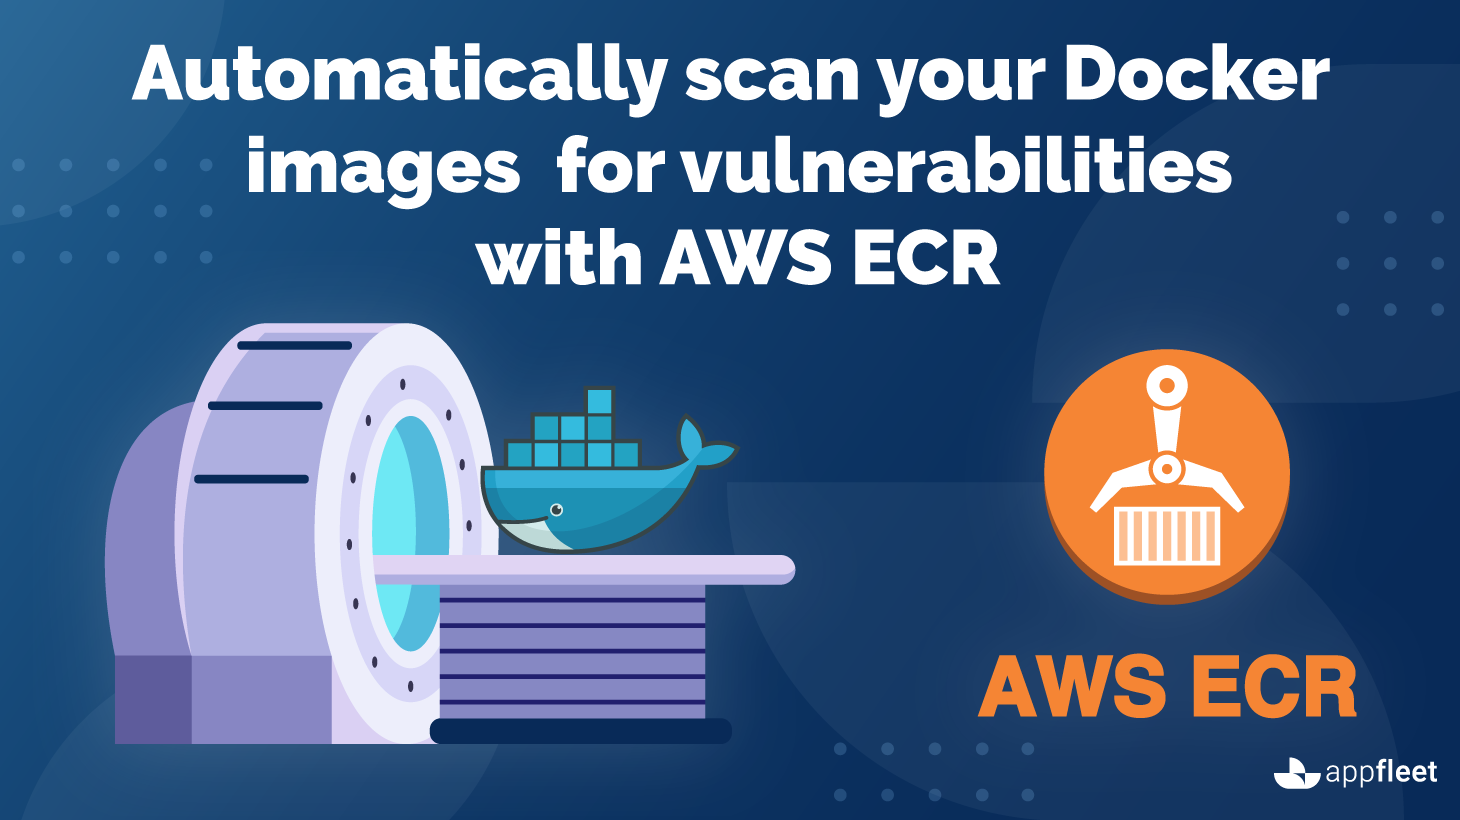 Automatically scan your Docker images for vulnerabilities with AWS ECR